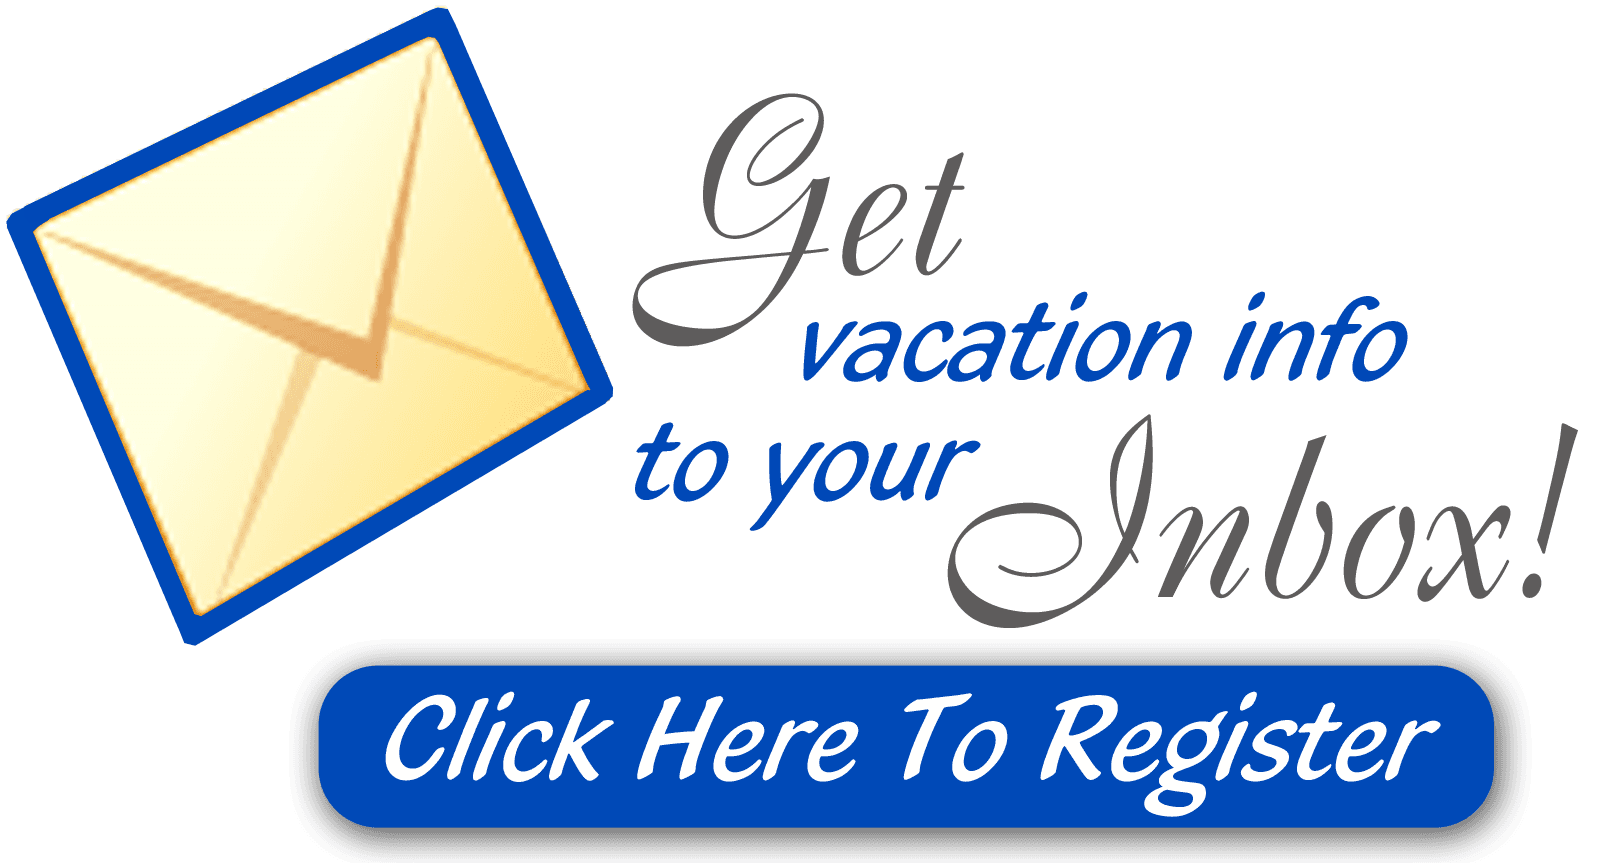 Get vacation info to your inbox!  Click here to register